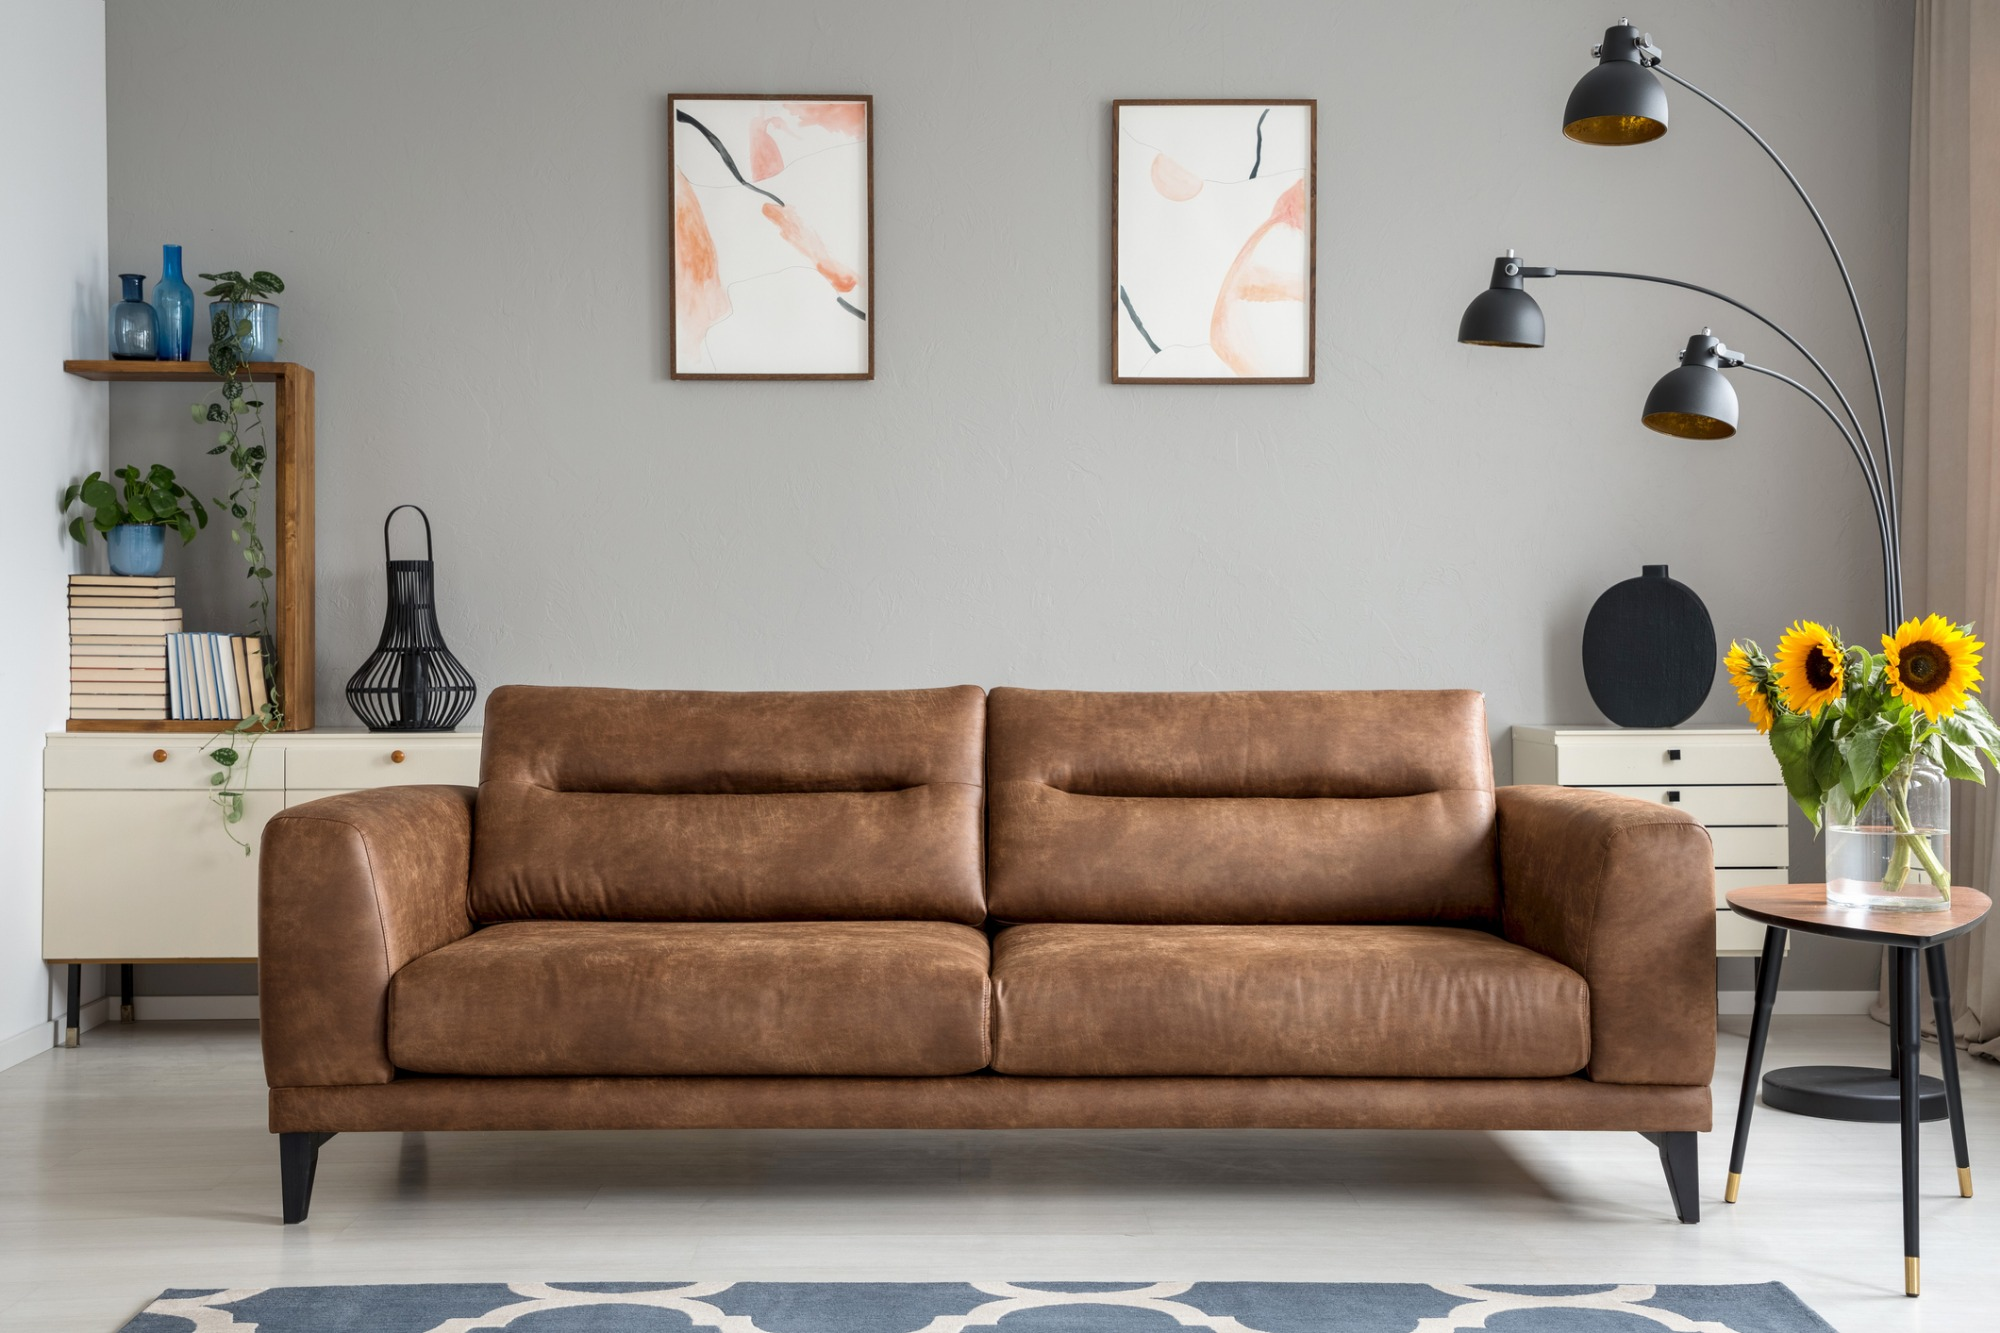 How to store leather furniture